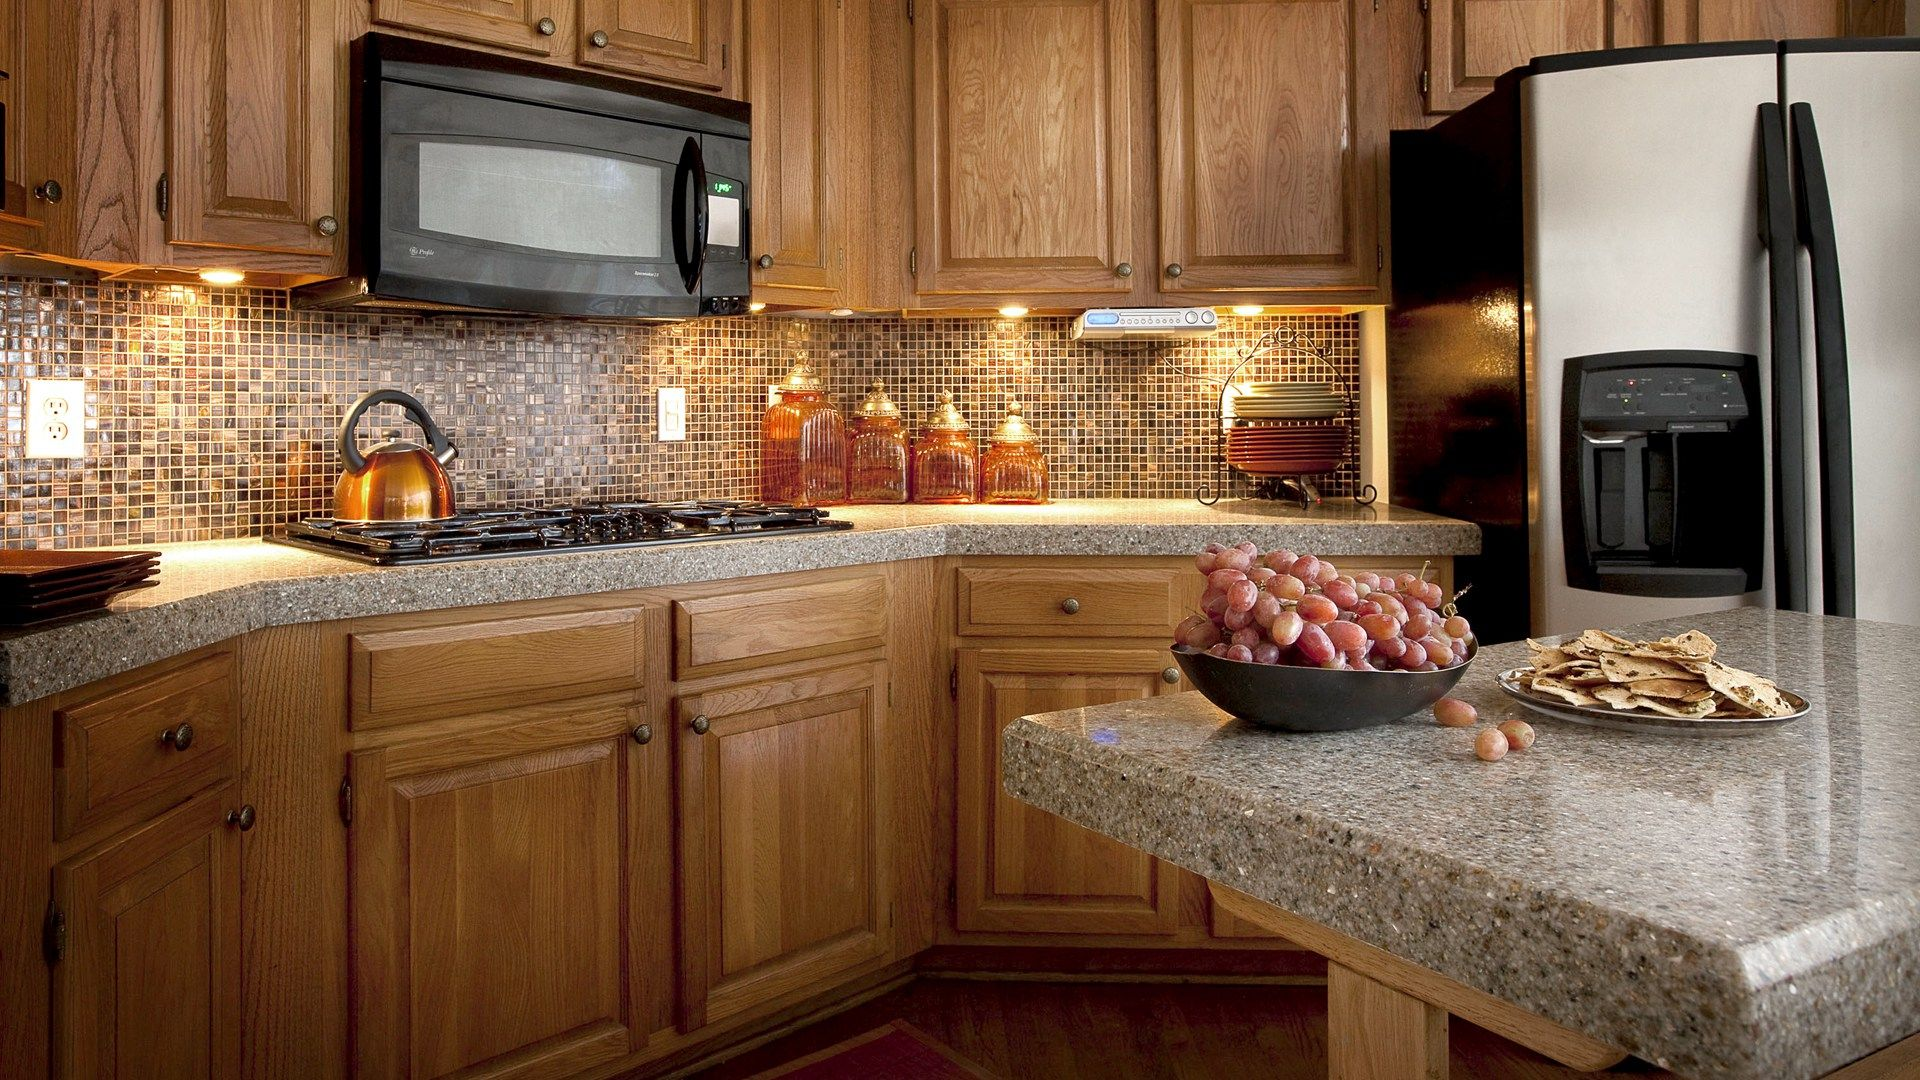 types of kitchen countertops granite countertops ideas materials tile types painting granite kitchen countertop materials casual cottage